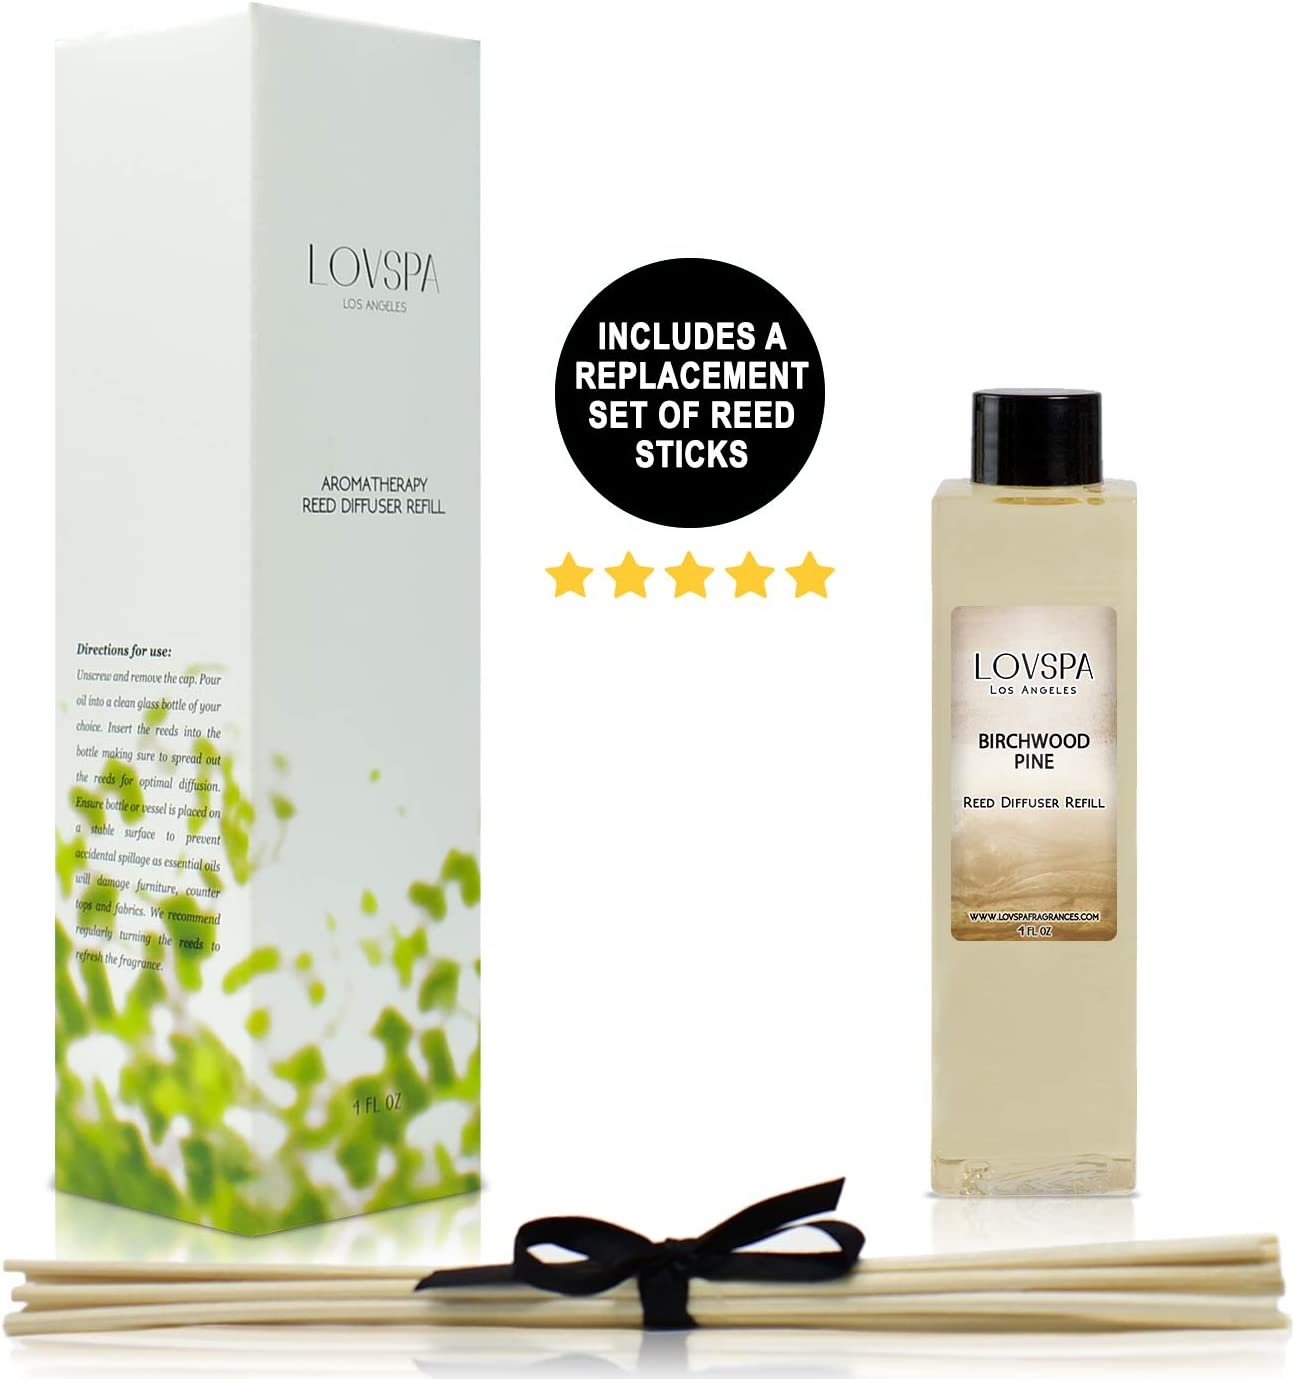 LOVSPA Birchwood Pine Reed Diffuser Oil Refill with Replacement Reed Sticks - Scent for Kitchen or Bathroom, 4 oz - Made in The USA